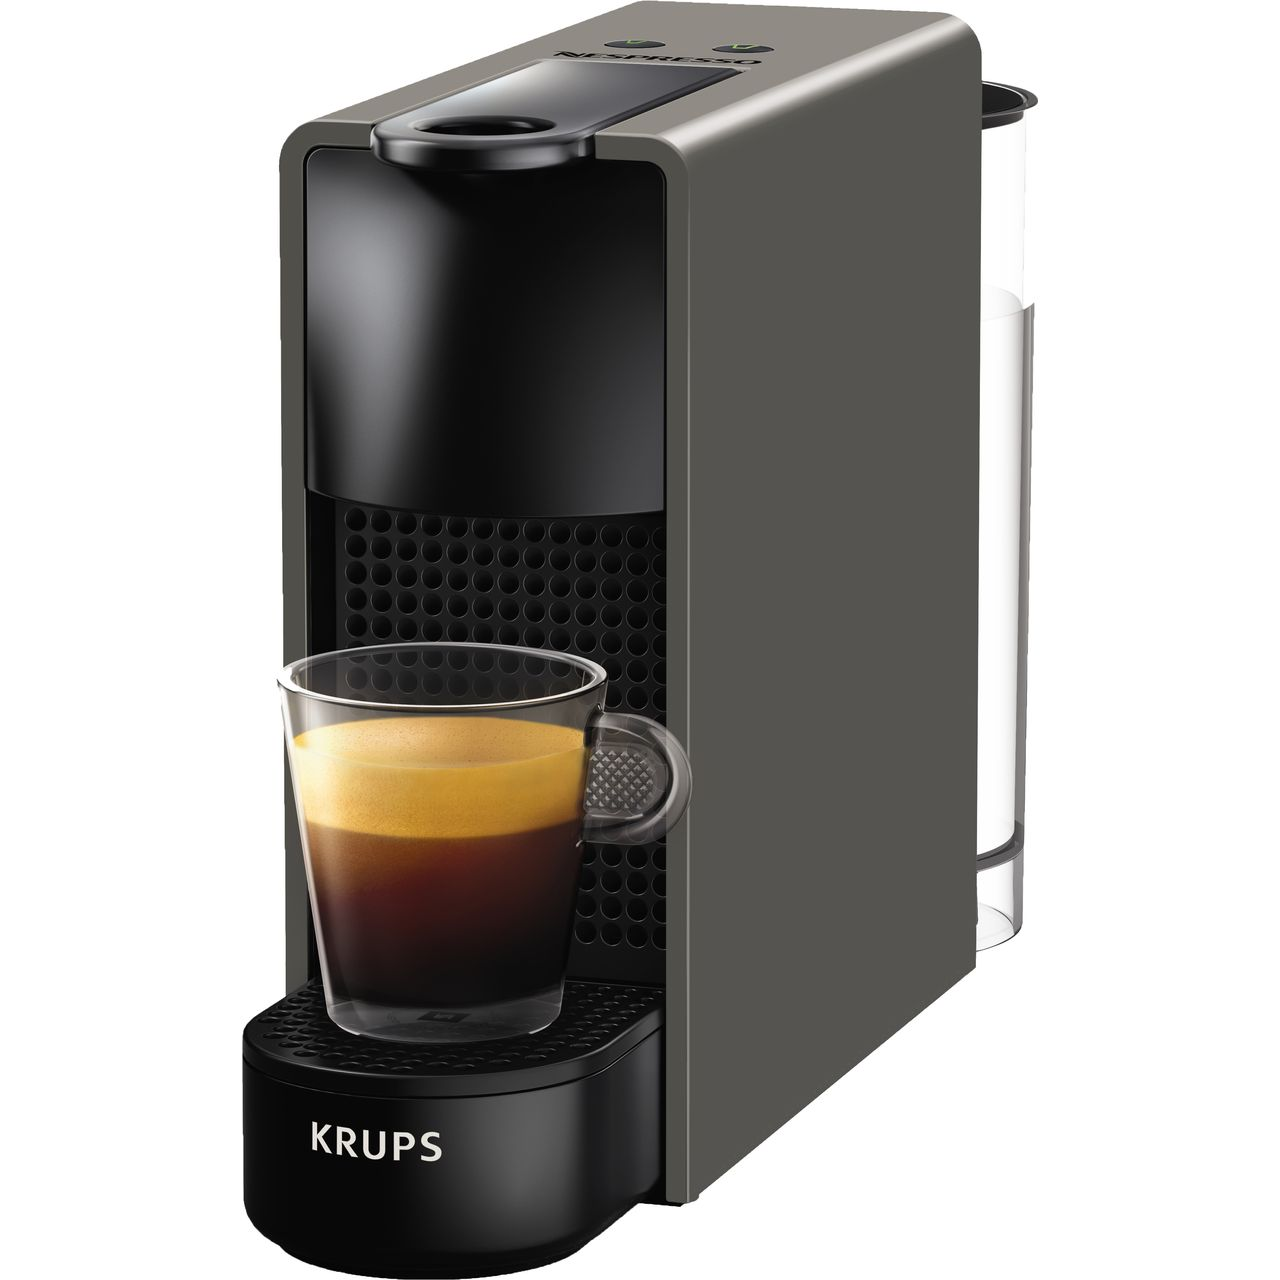 xn110b40 gy nespresso by krups coffee machine. Black Bedroom Furniture Sets. Home Design Ideas